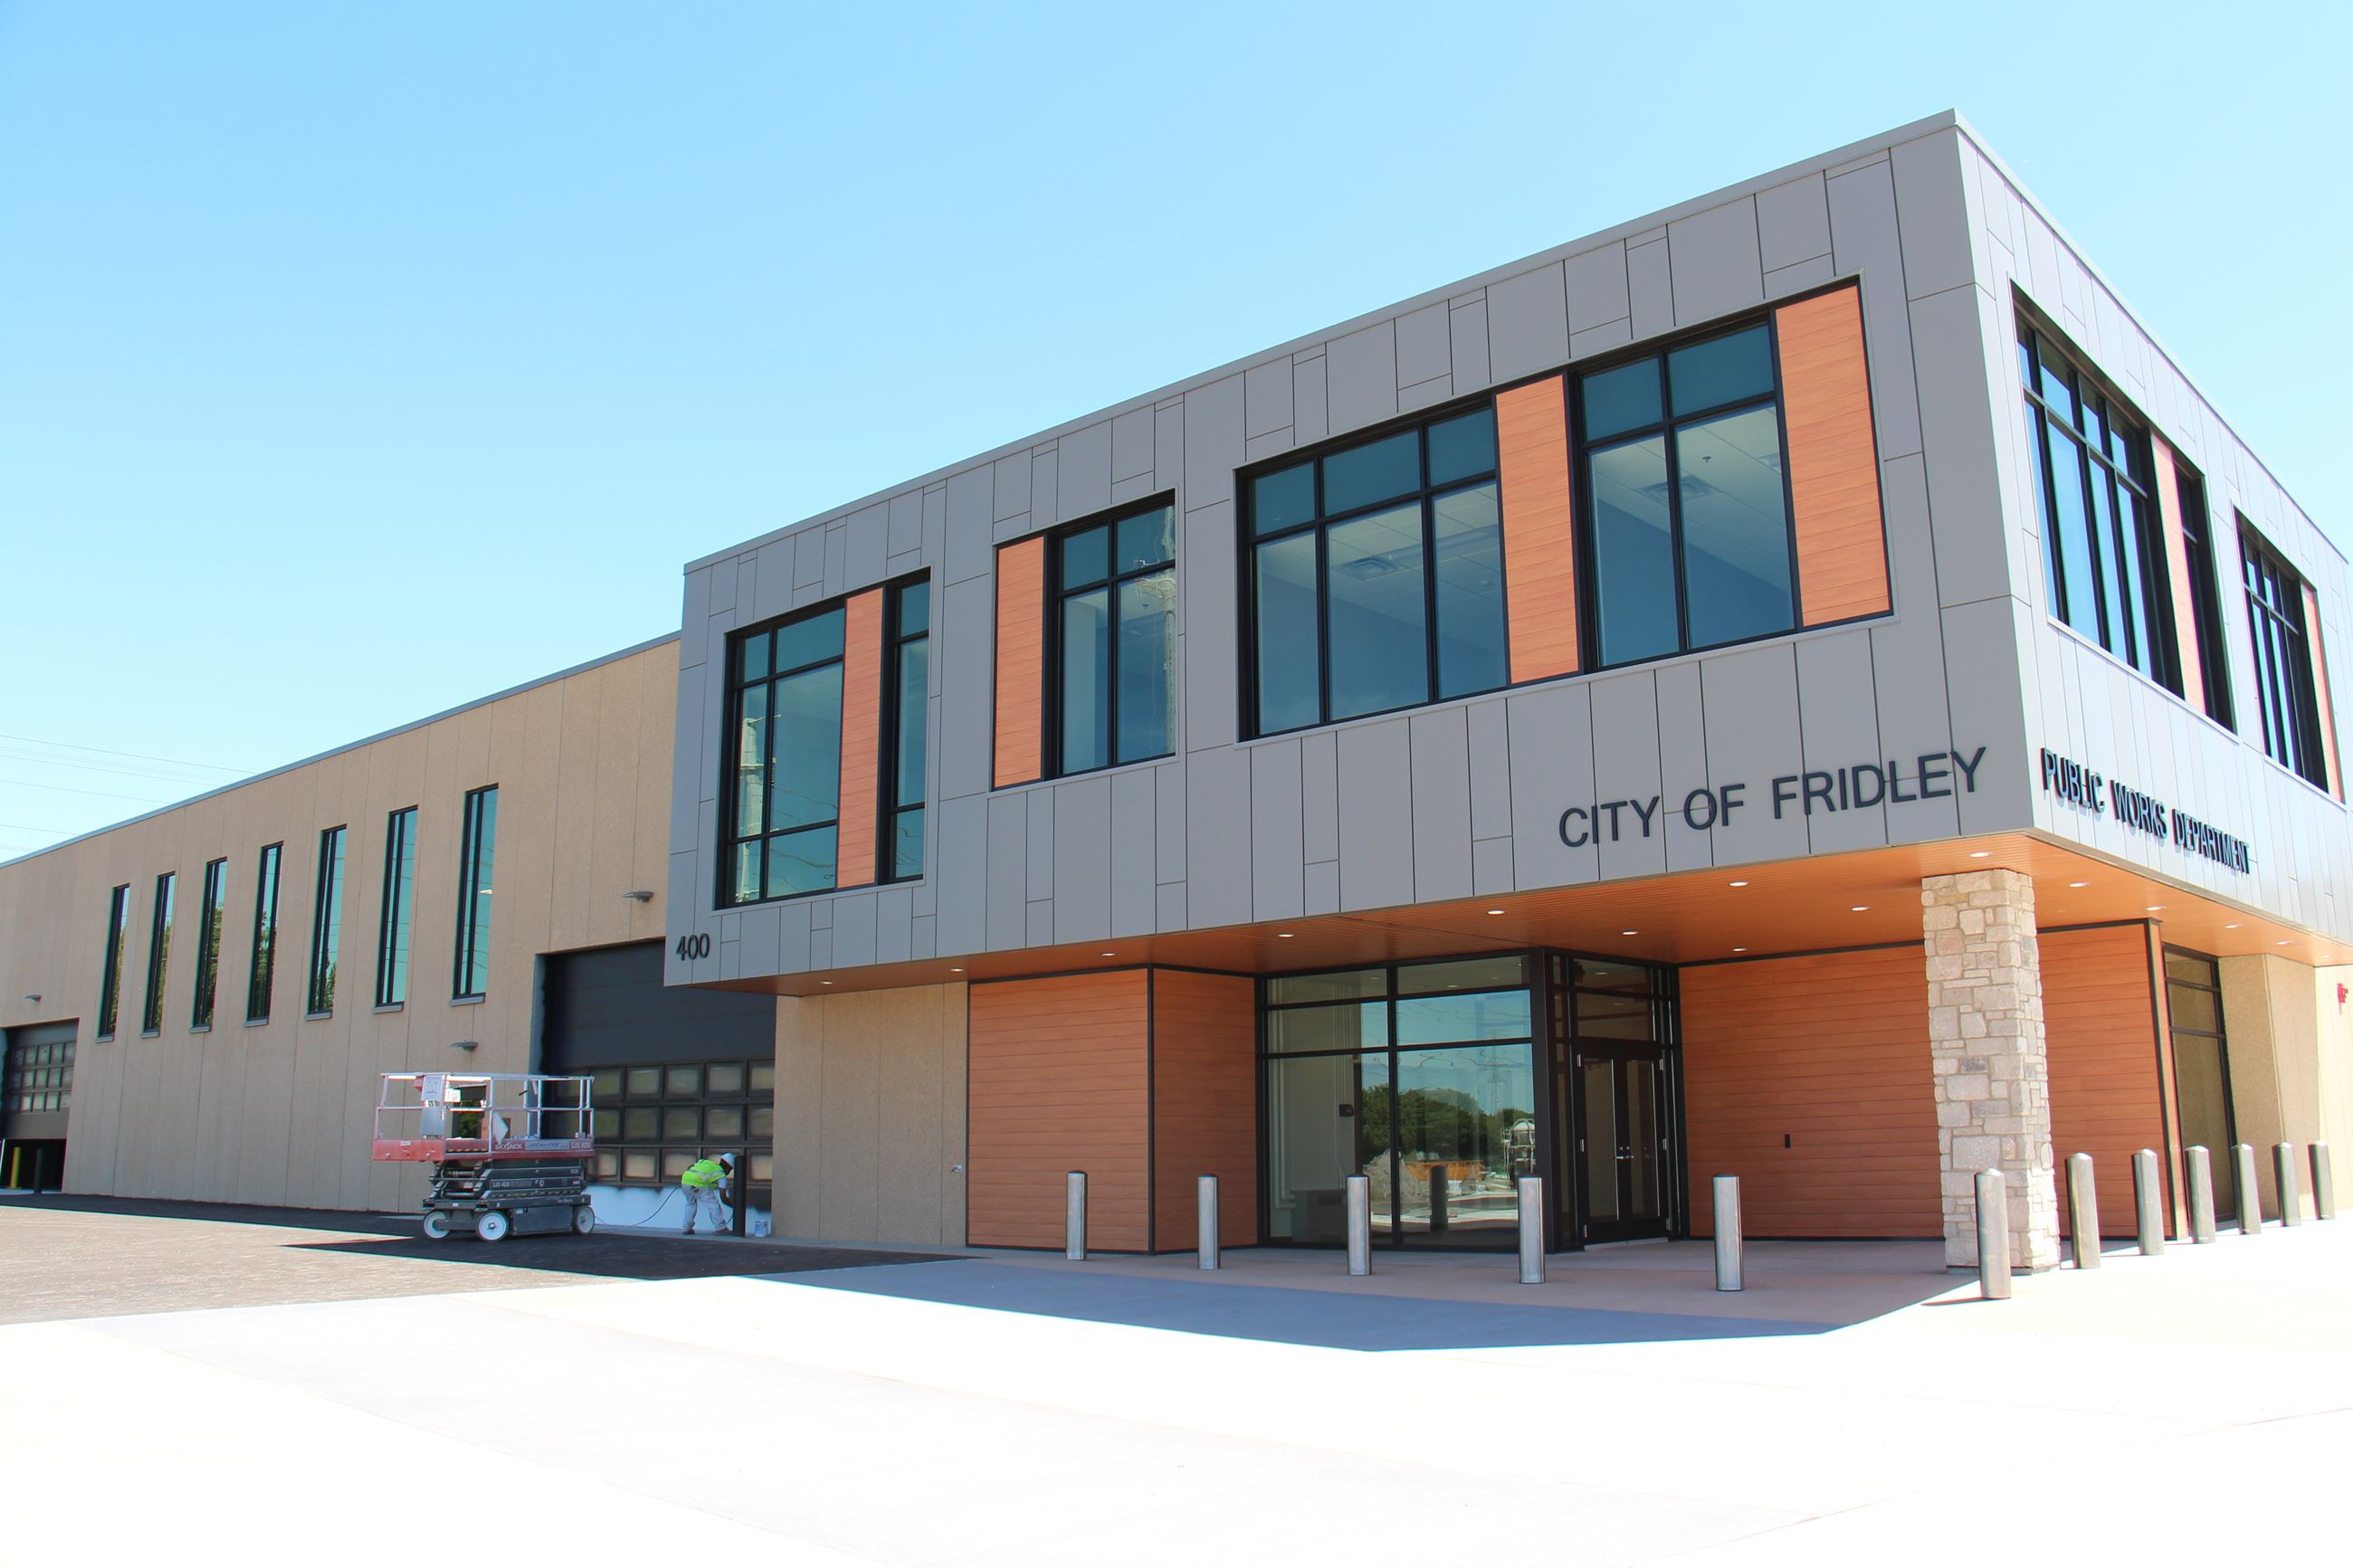 New public works building